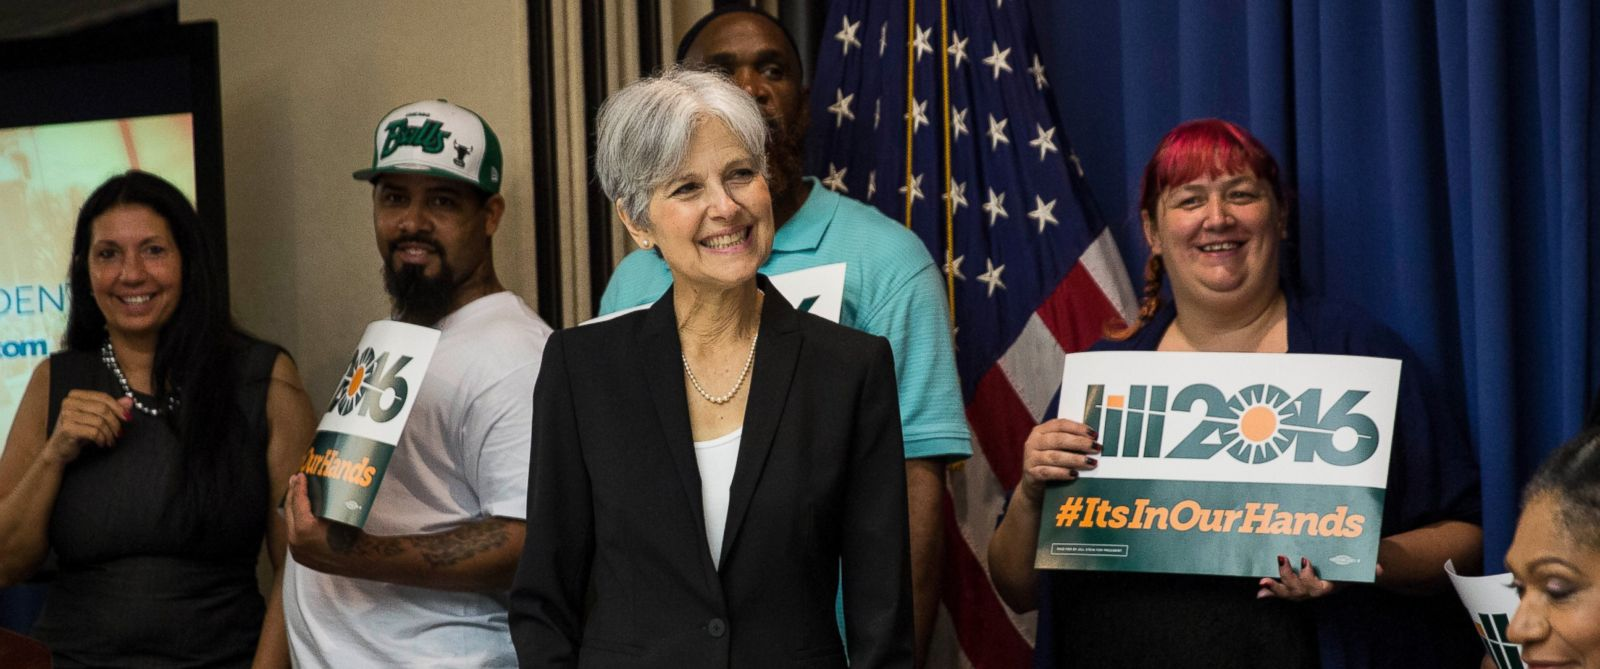 PHOTO: Jill Stein smiles after announcing that she will seek the Green Partys presidential nomination, at the National Press Club, June 23, 2015, in Washington.